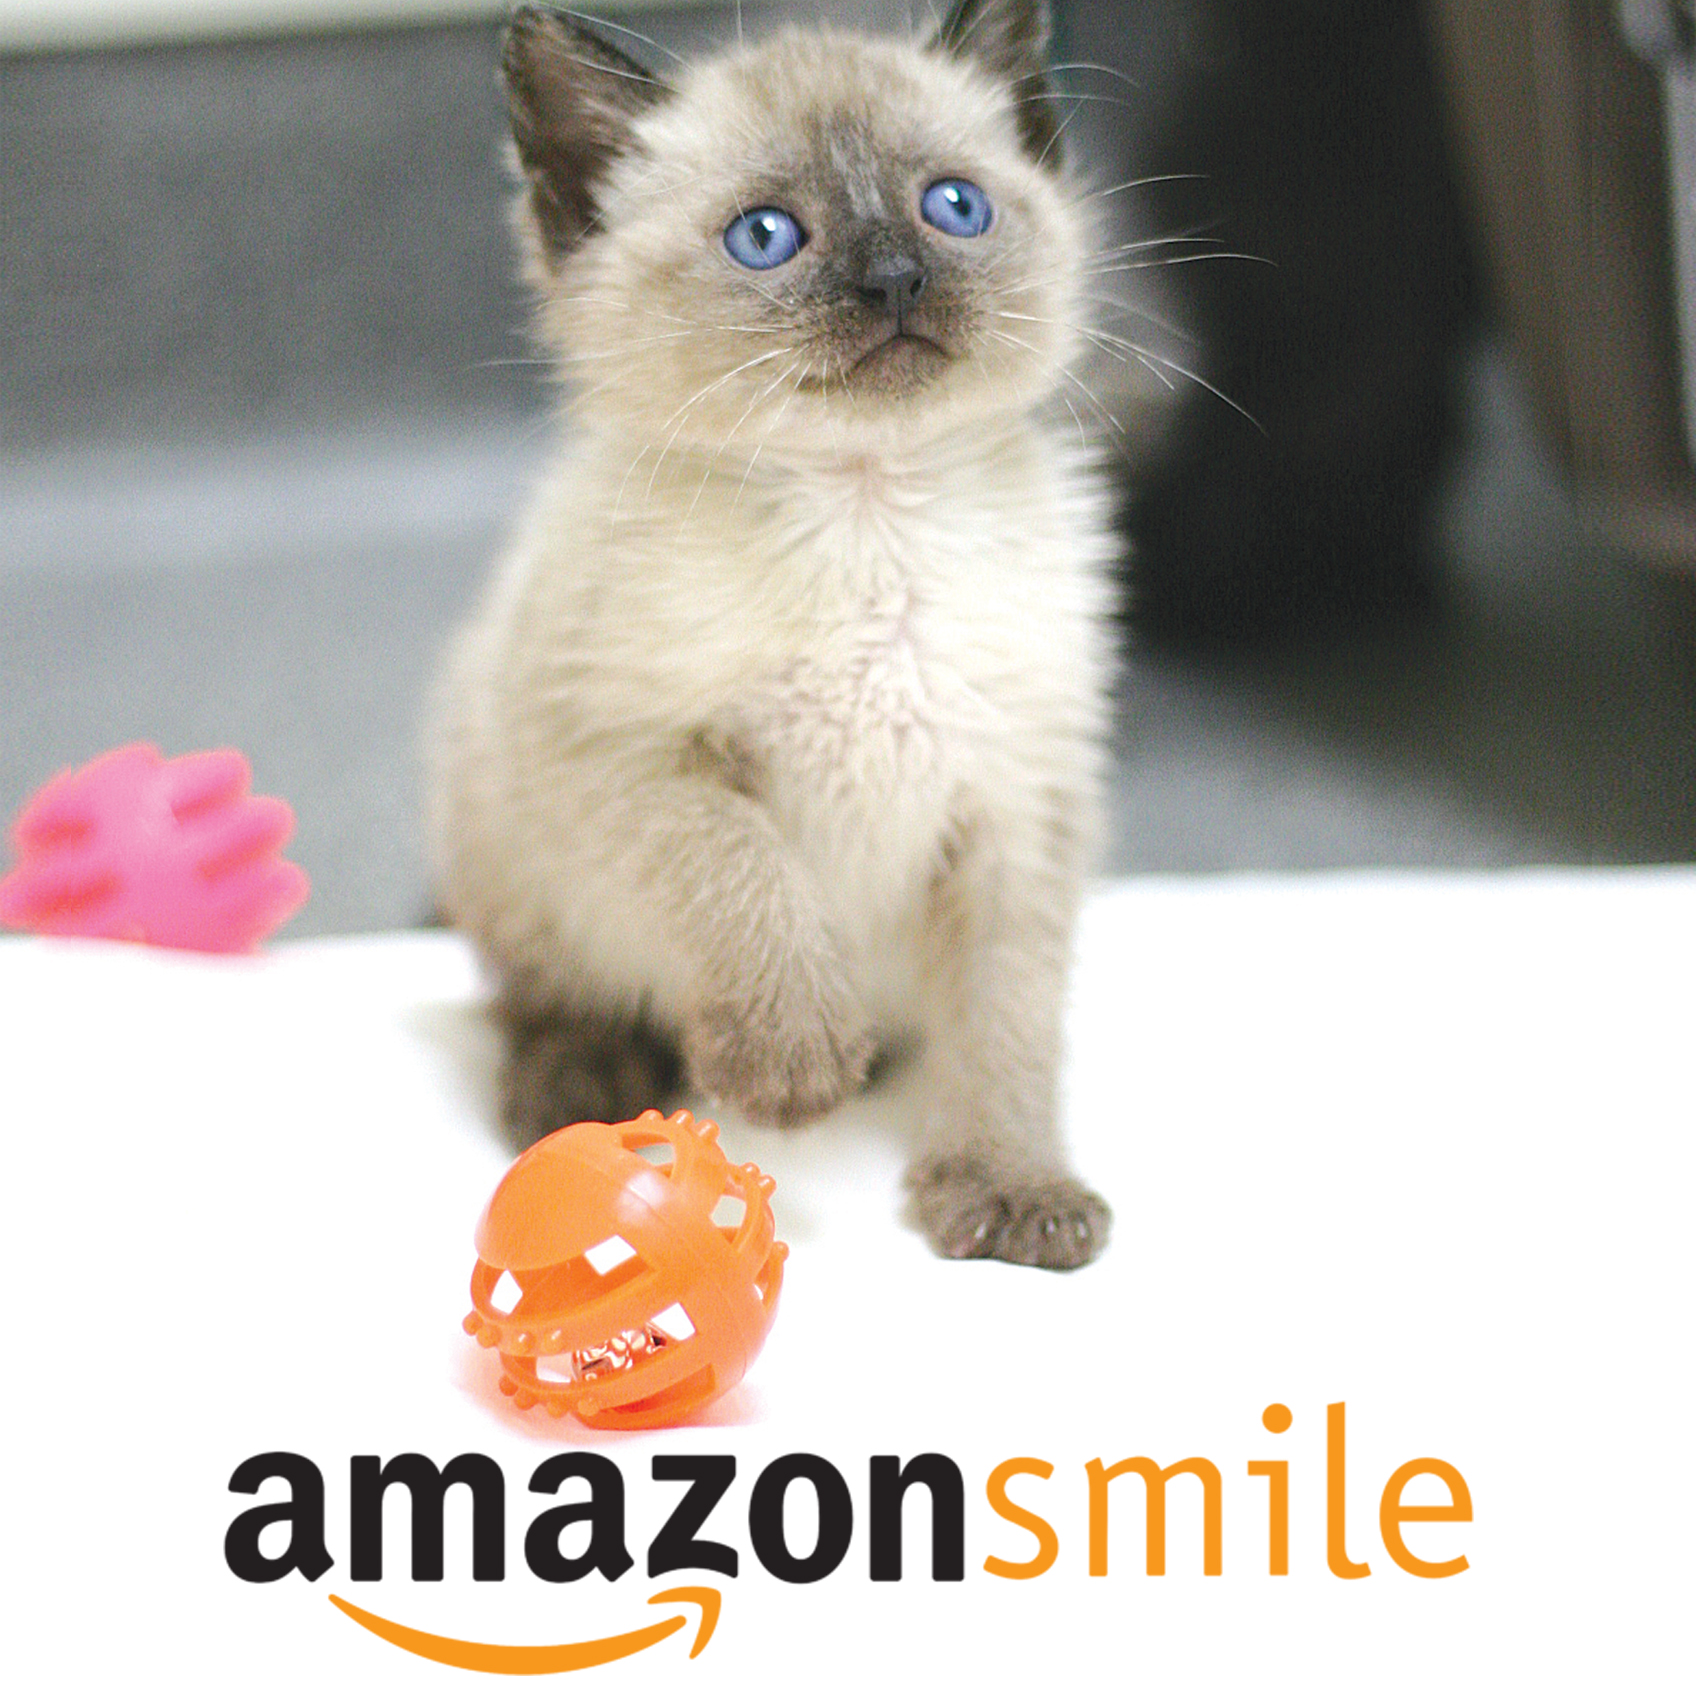 Make your purchases through HHS' Amazon Smile site and Amazon automatically donates 0.5% of the price of eligible purchases to the homeless pets at HHS.